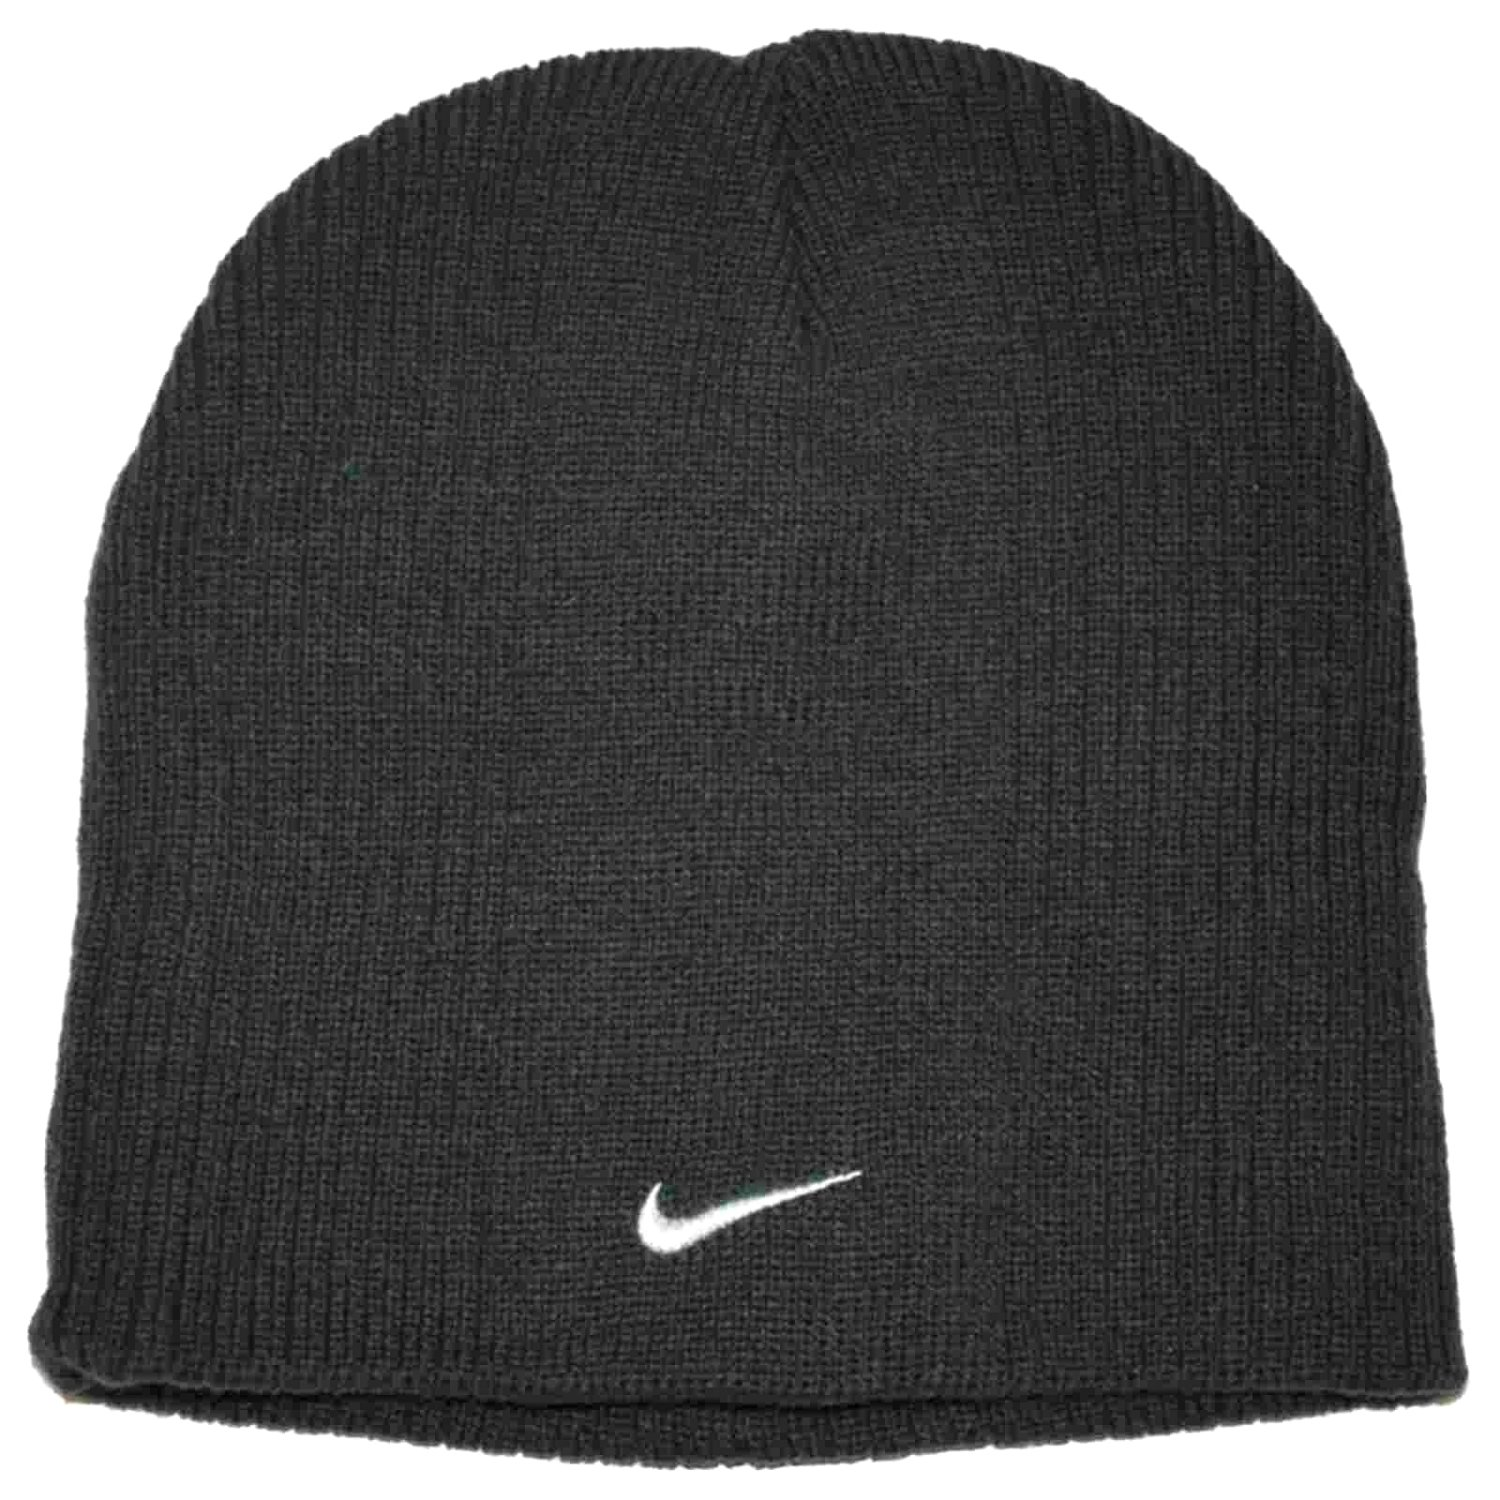 37cadfa3 ... sale get quotations nike small check youth boys 8 20 ribbed beanie hat  anthracite 2d483 f28a0